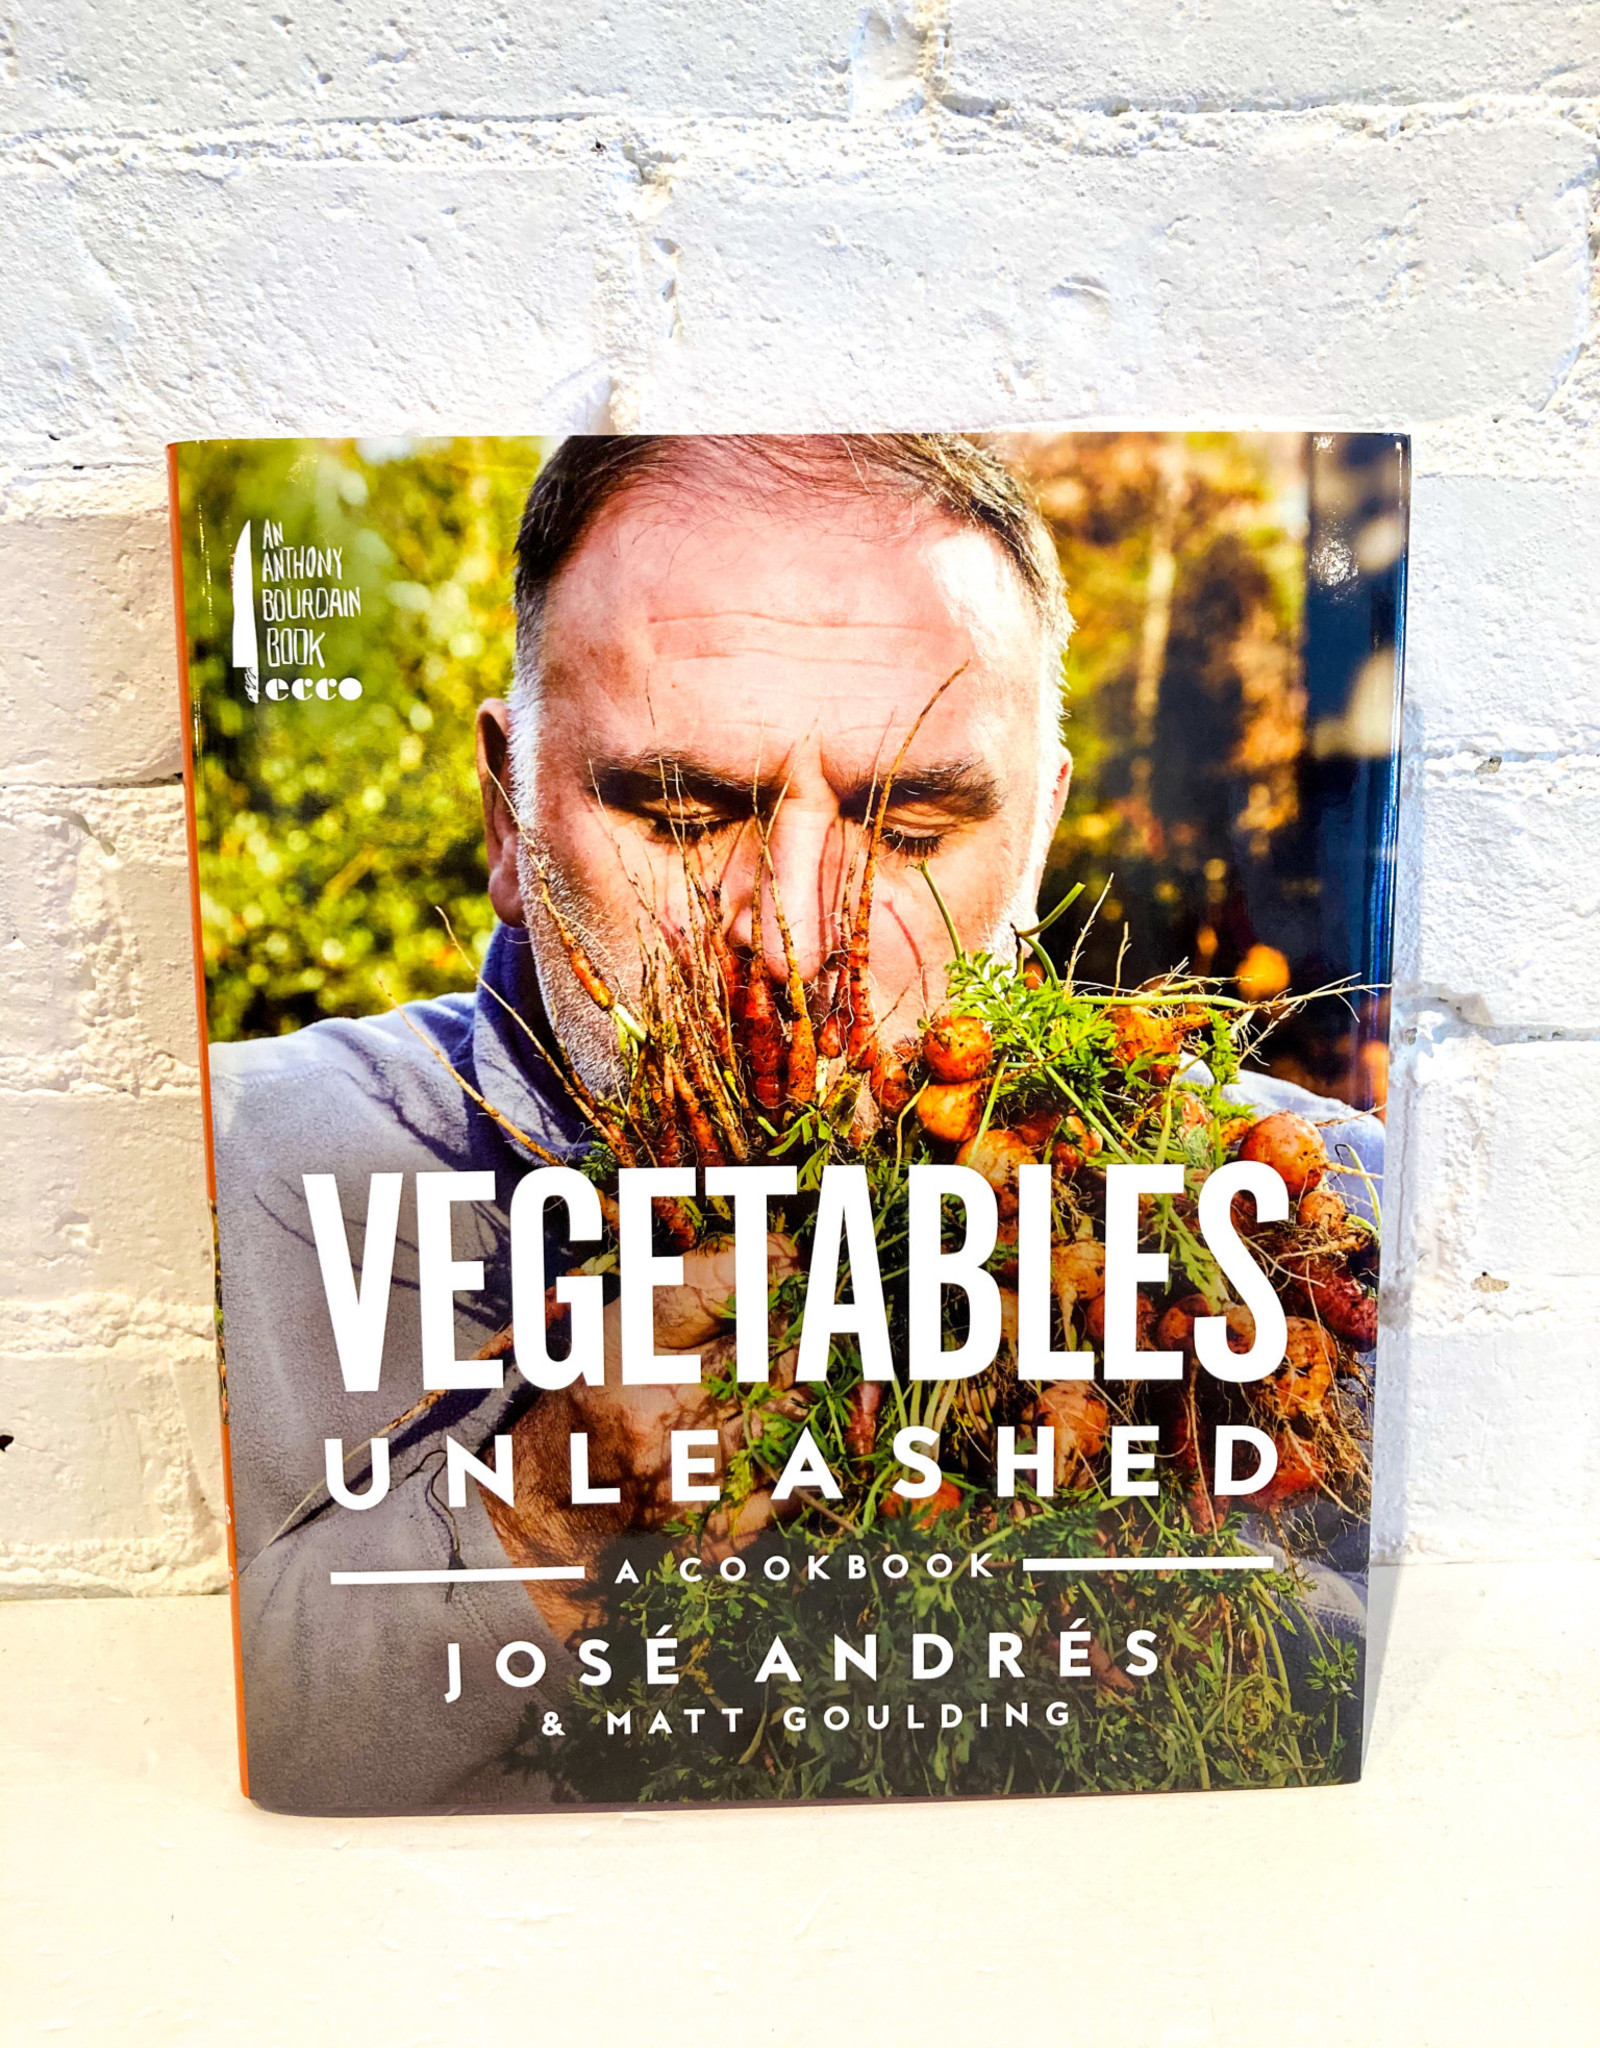 Vegetables Unleashed by José Andrés & Matt Goulding